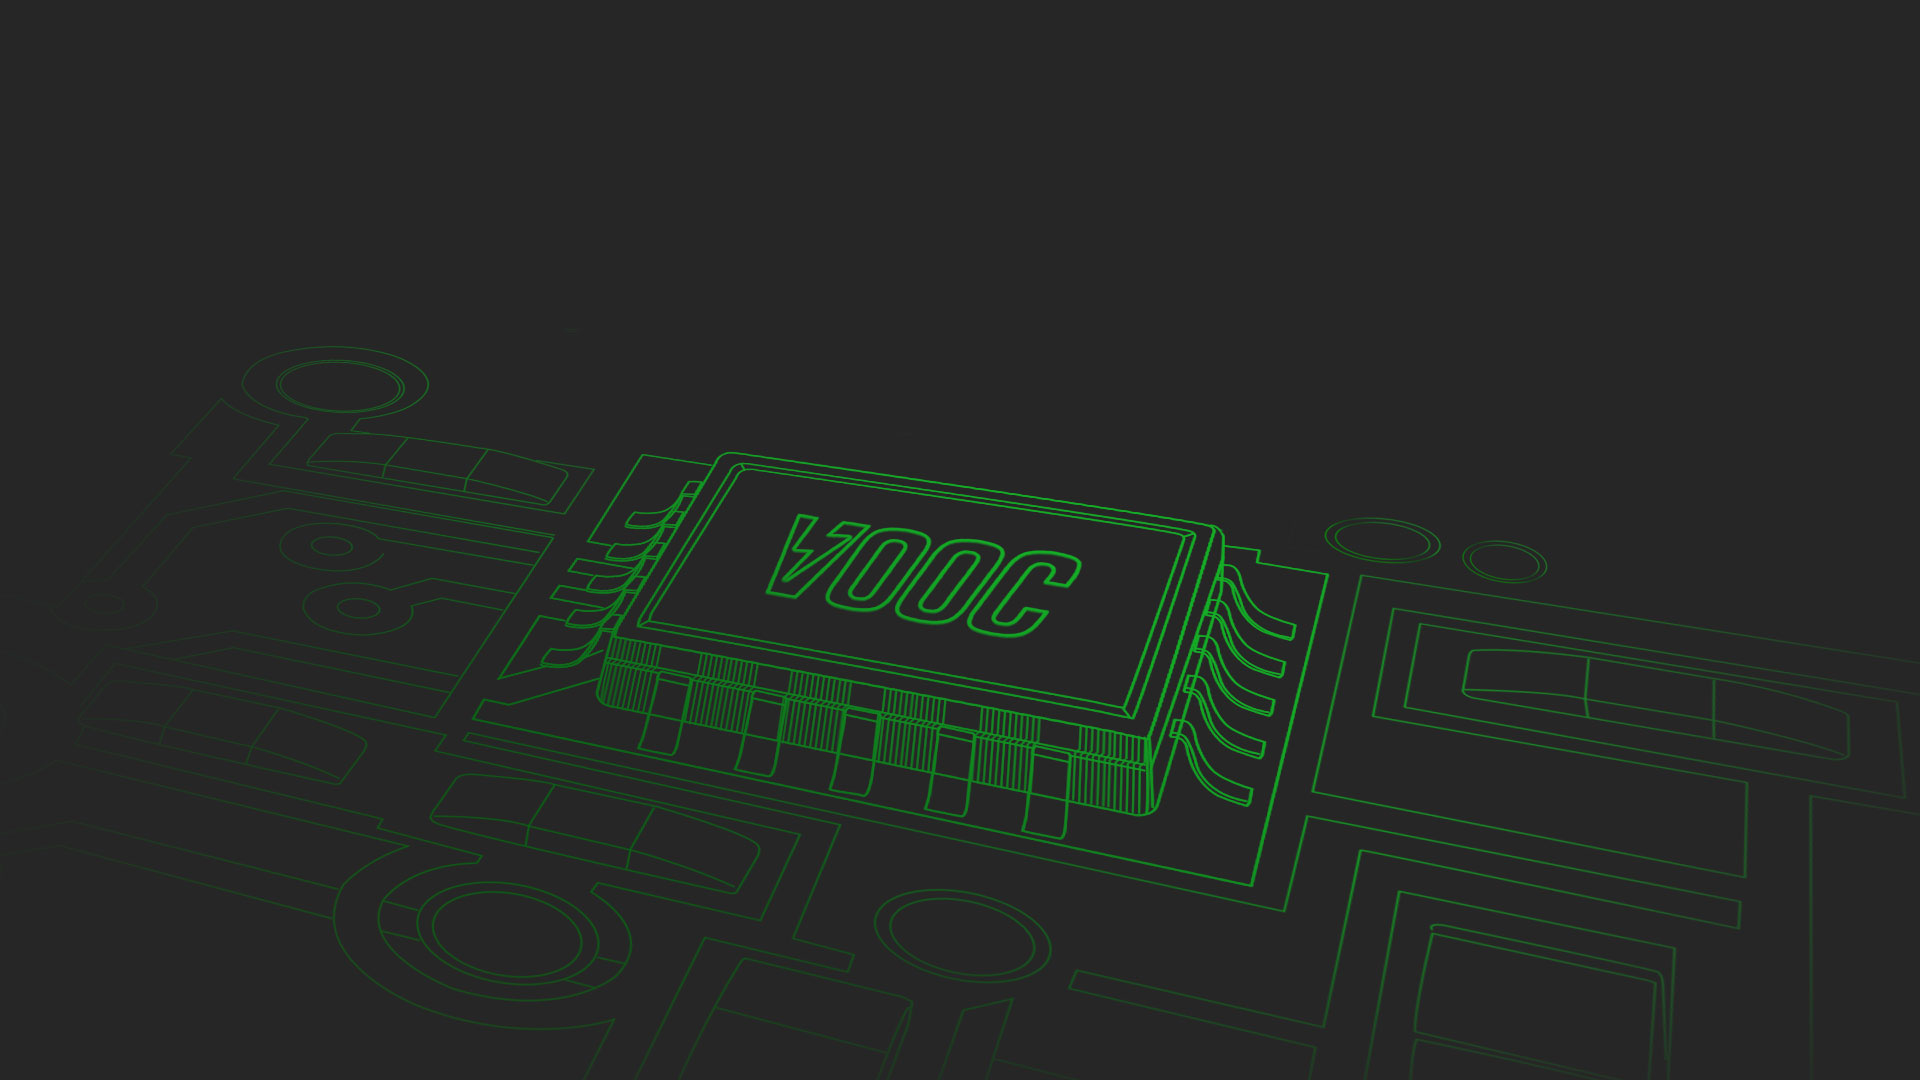 OPPO Super VOOC Fast Charging Technology Explained